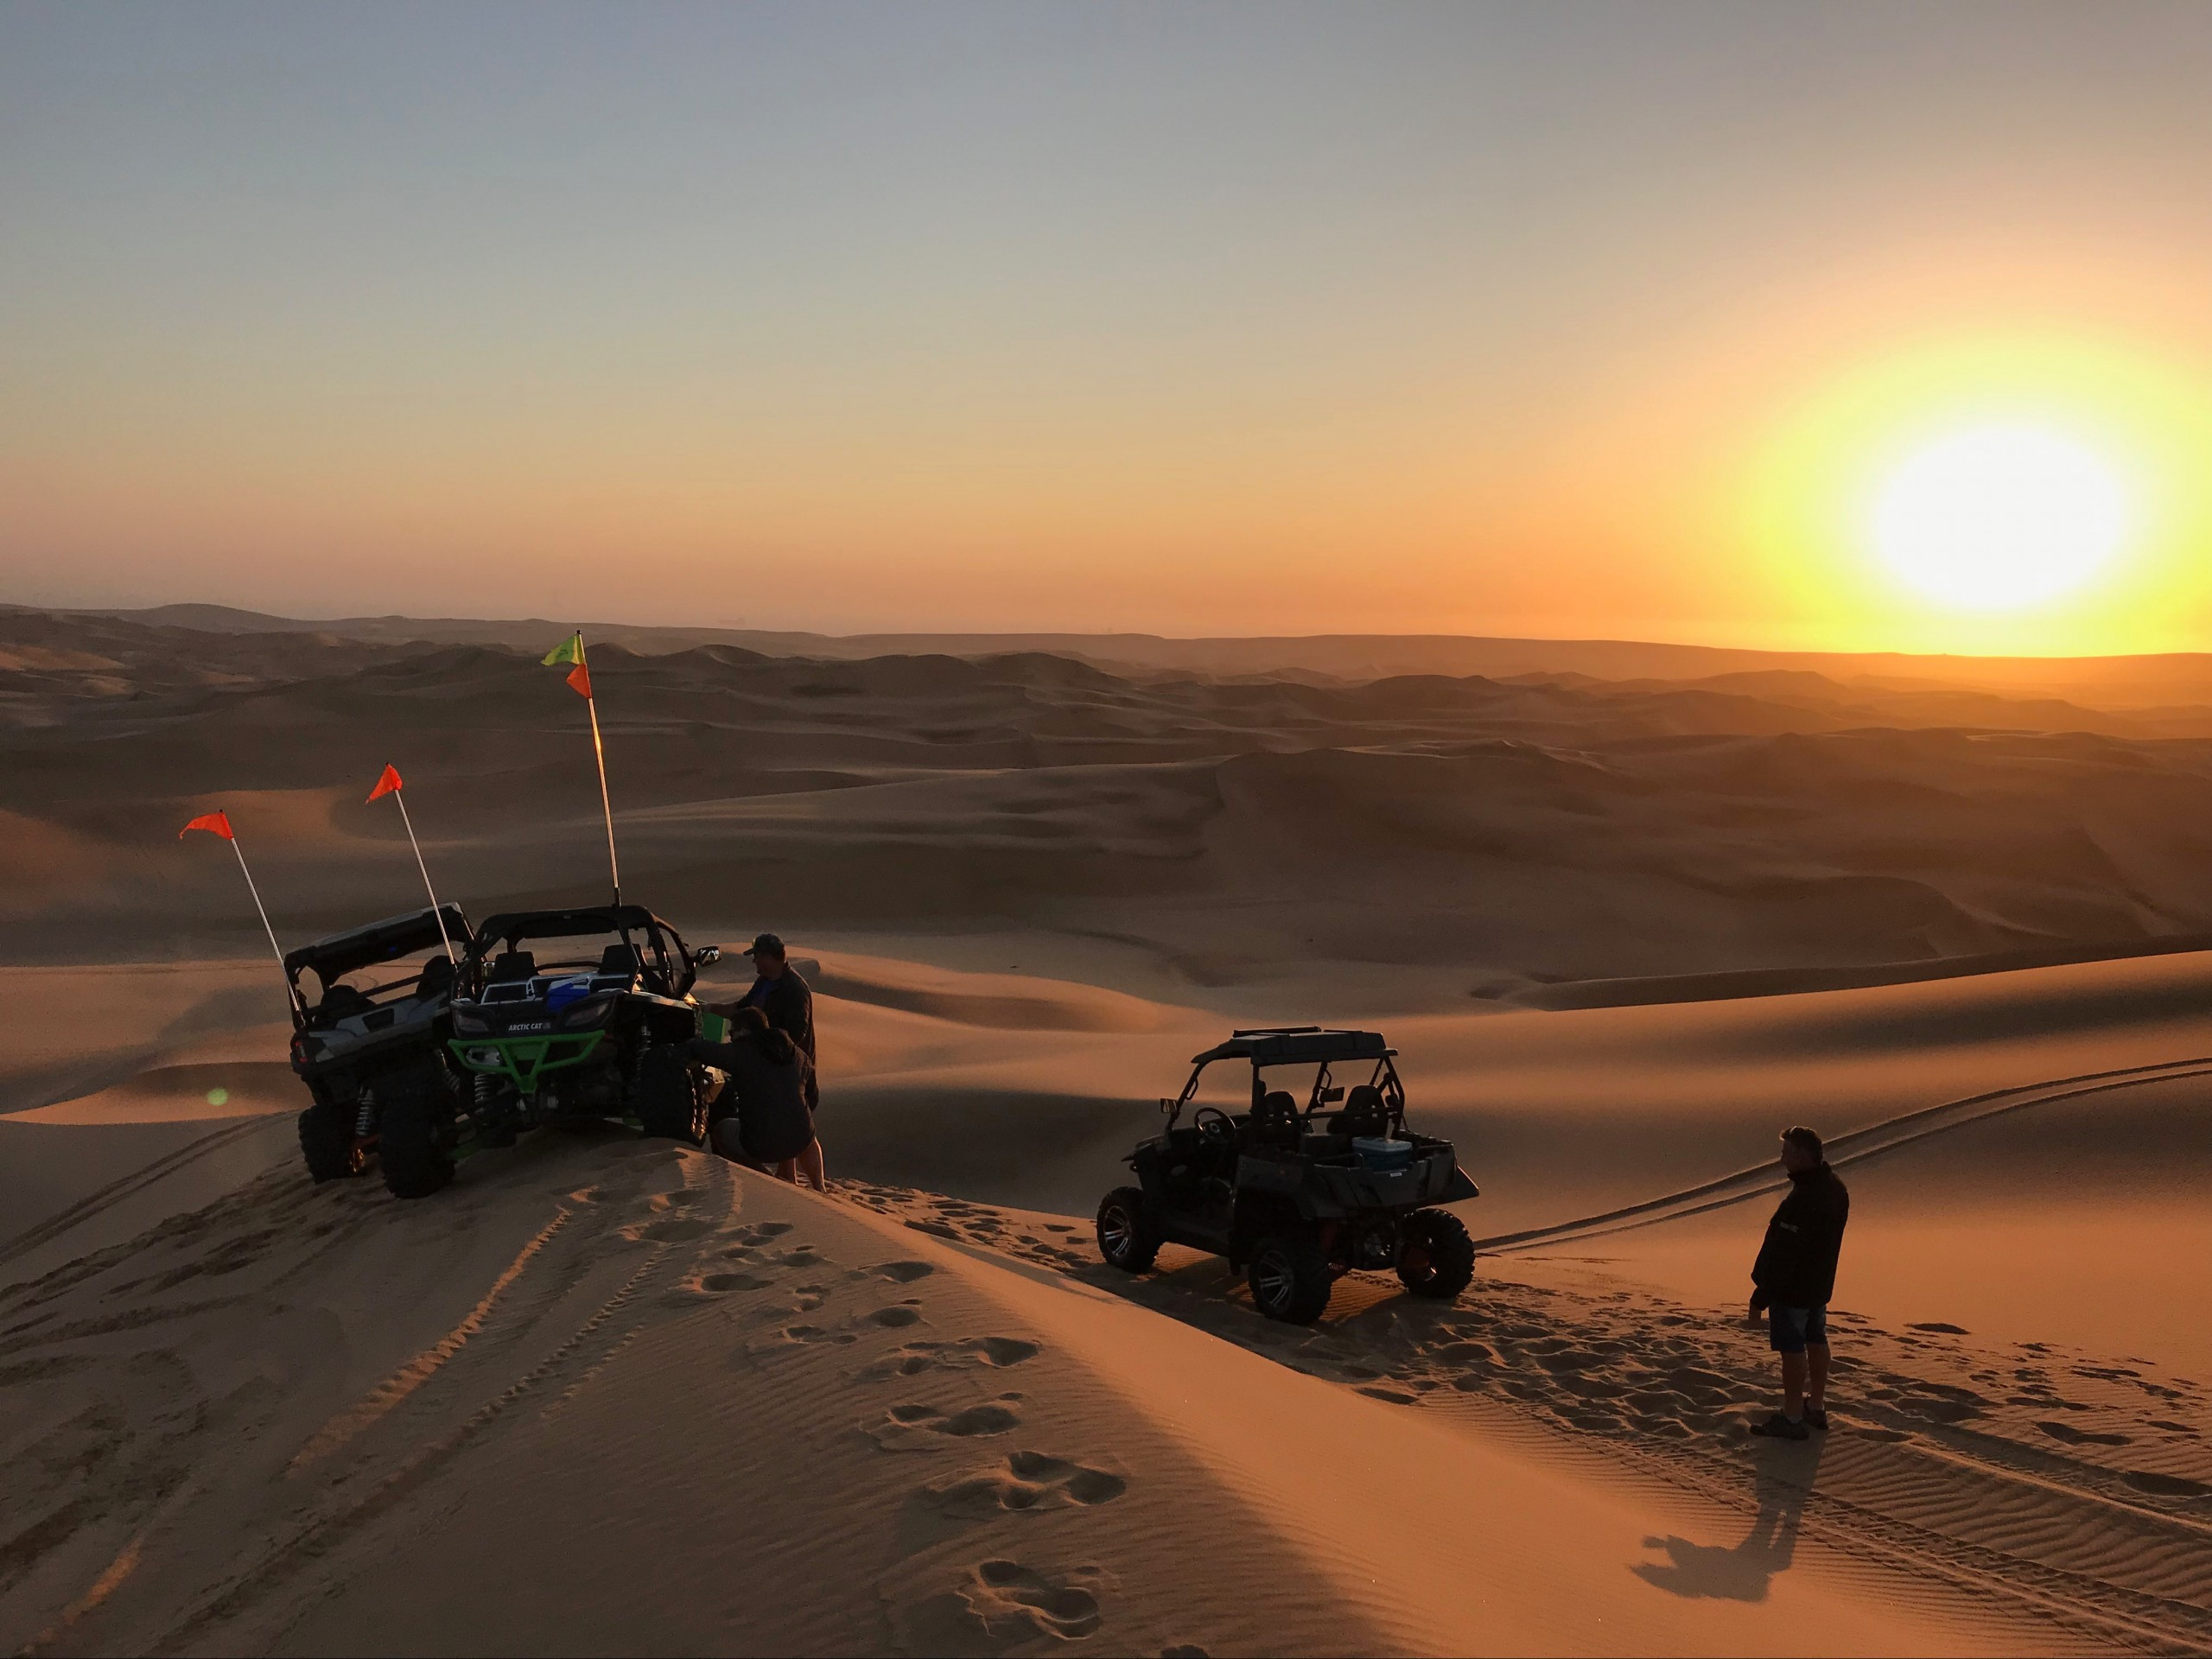 Untouched, Unproven, Uncertain—Off-Roading in the World's Oldest Desert